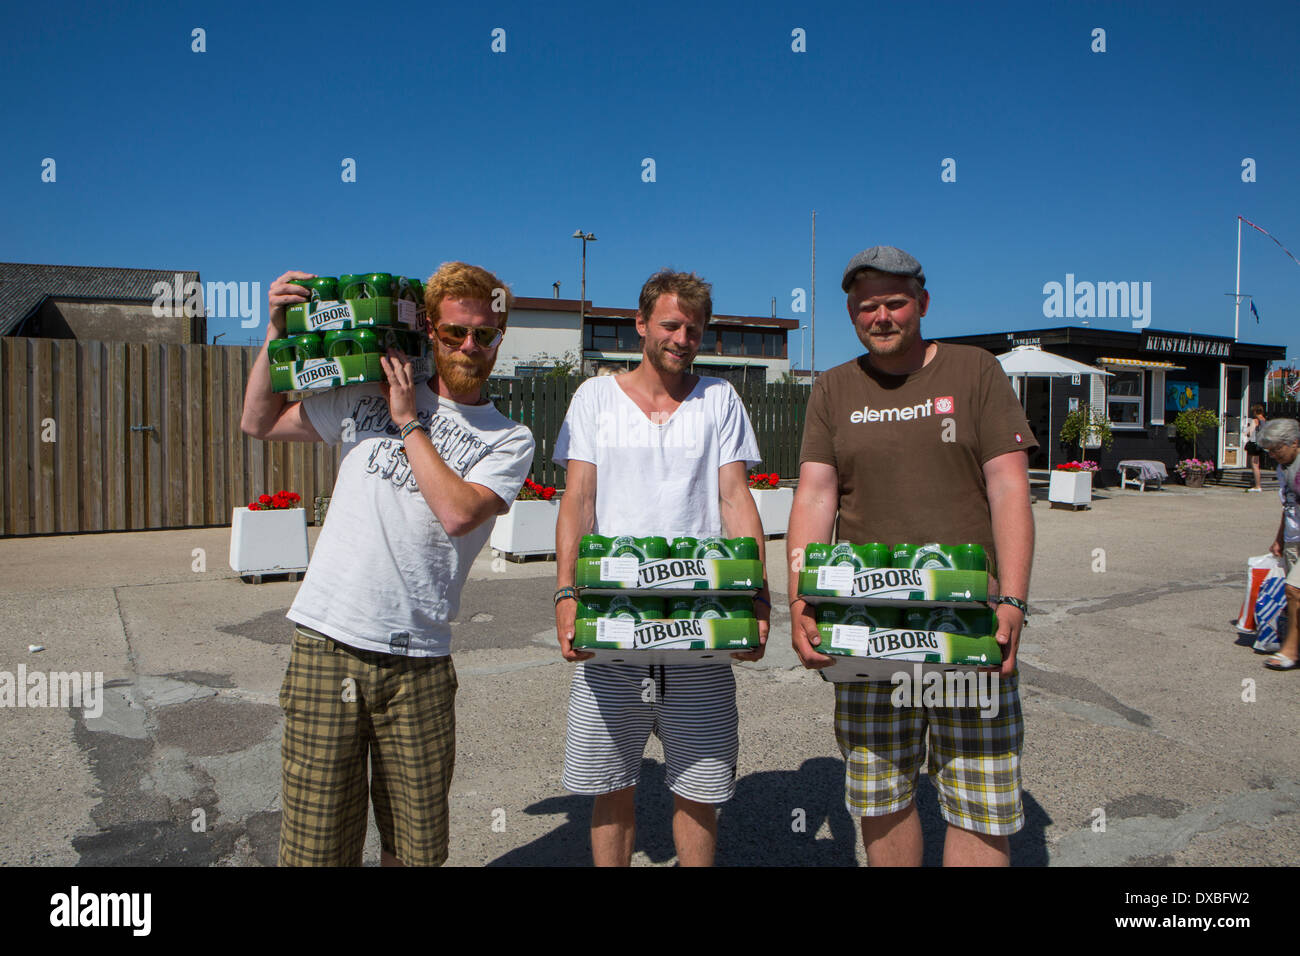 Youths with beer on the way to a party - Stock Image